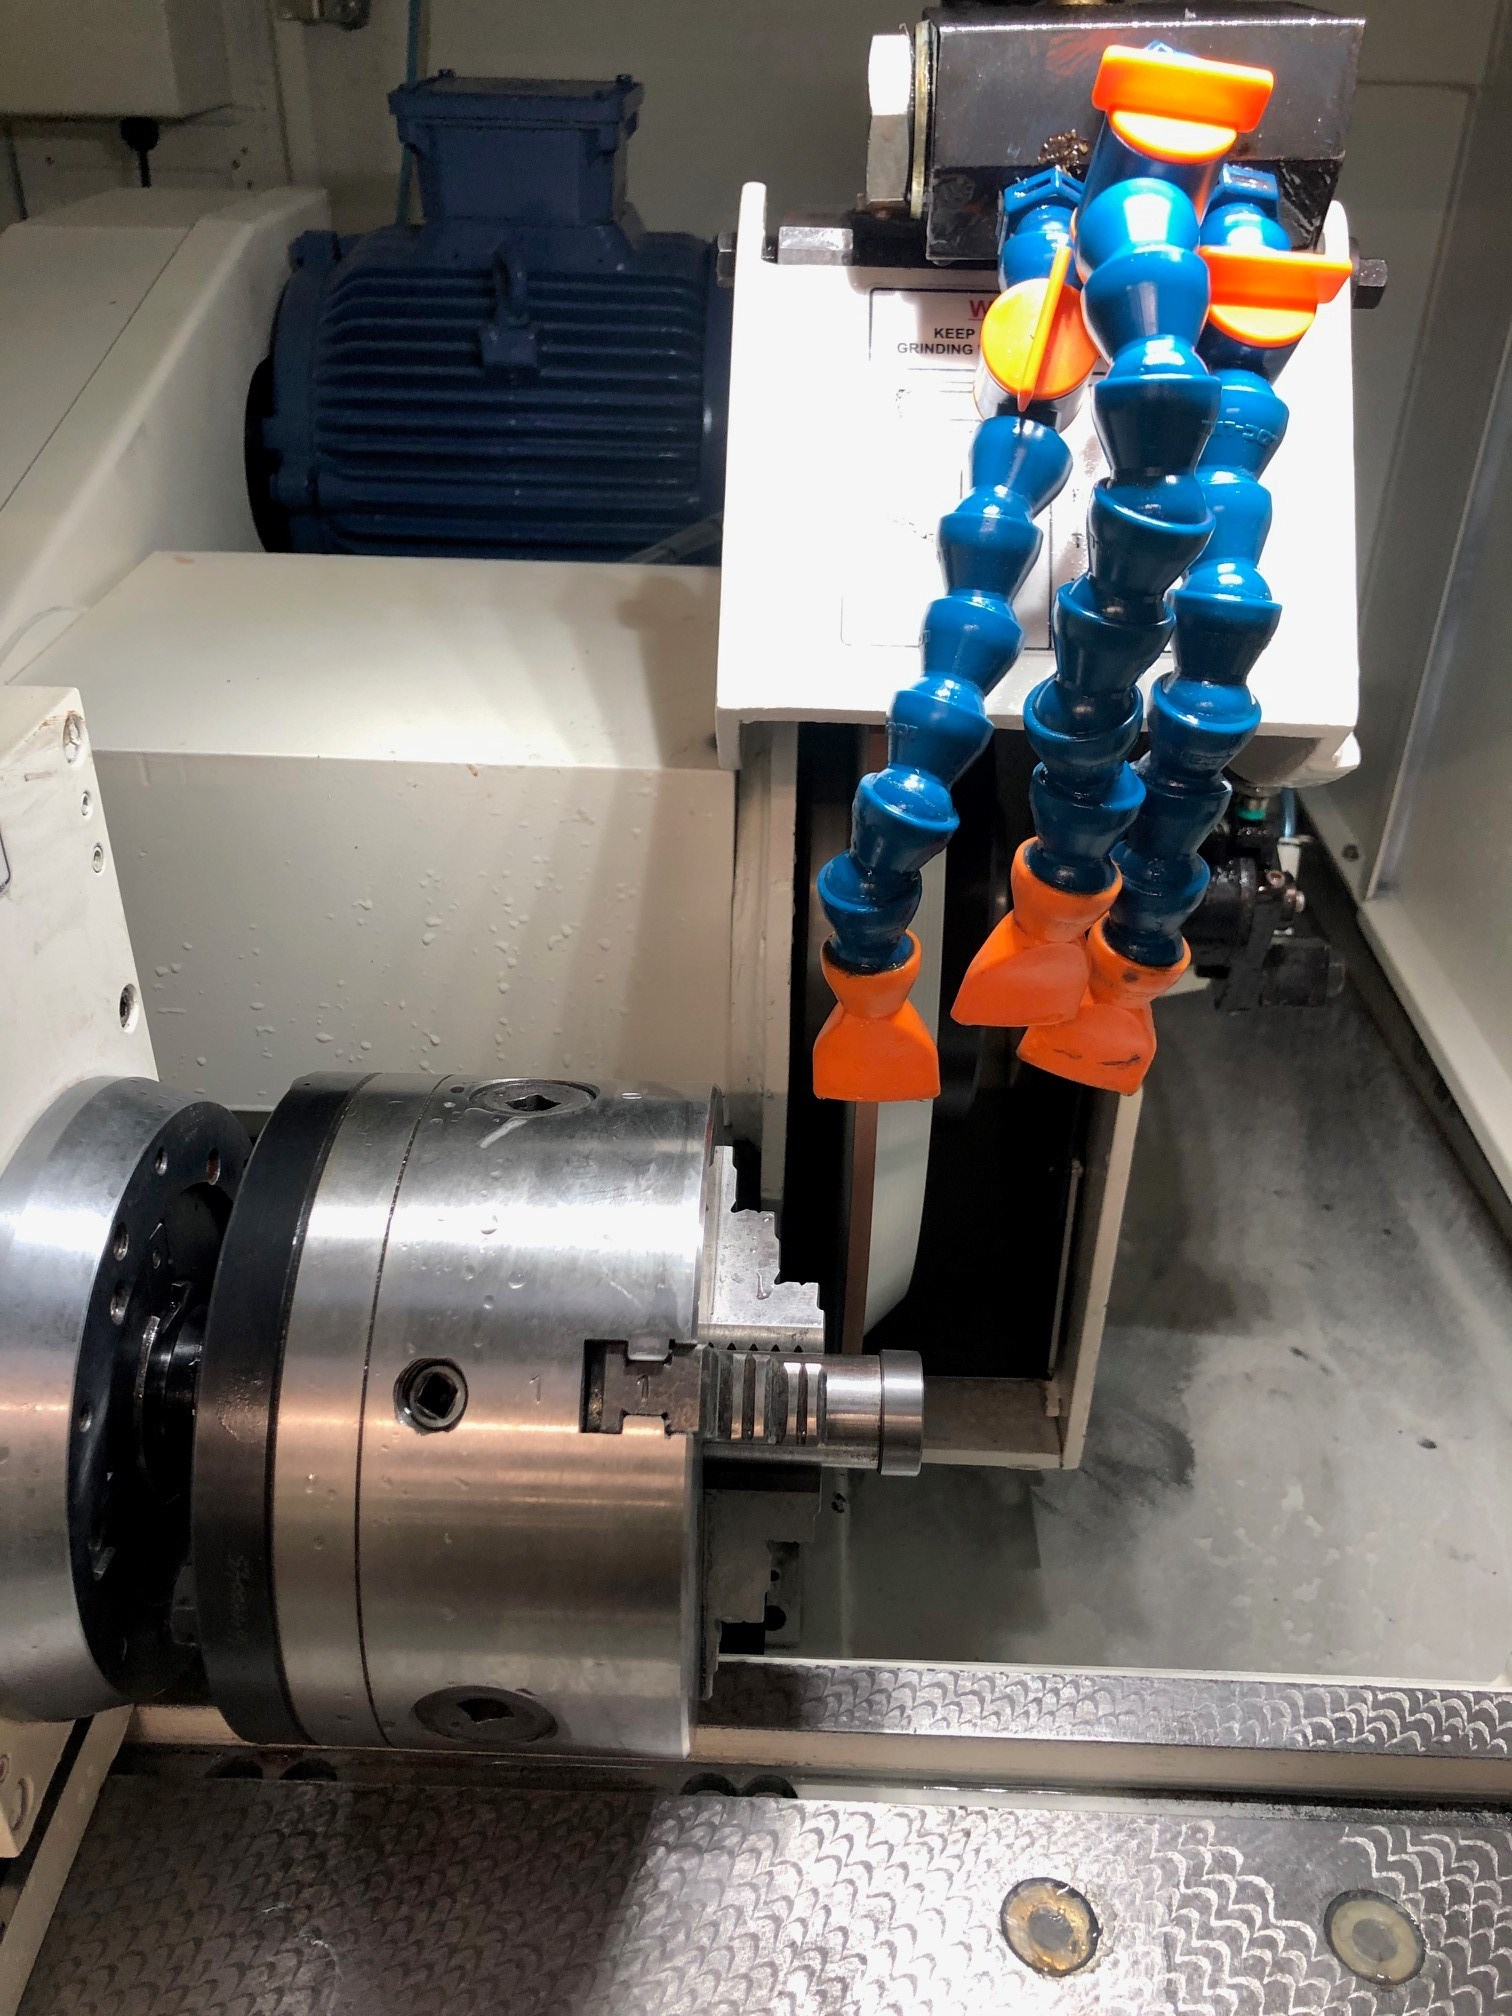 The component has a chamfer on the front corner which was ground by interpolation on their previous machine.